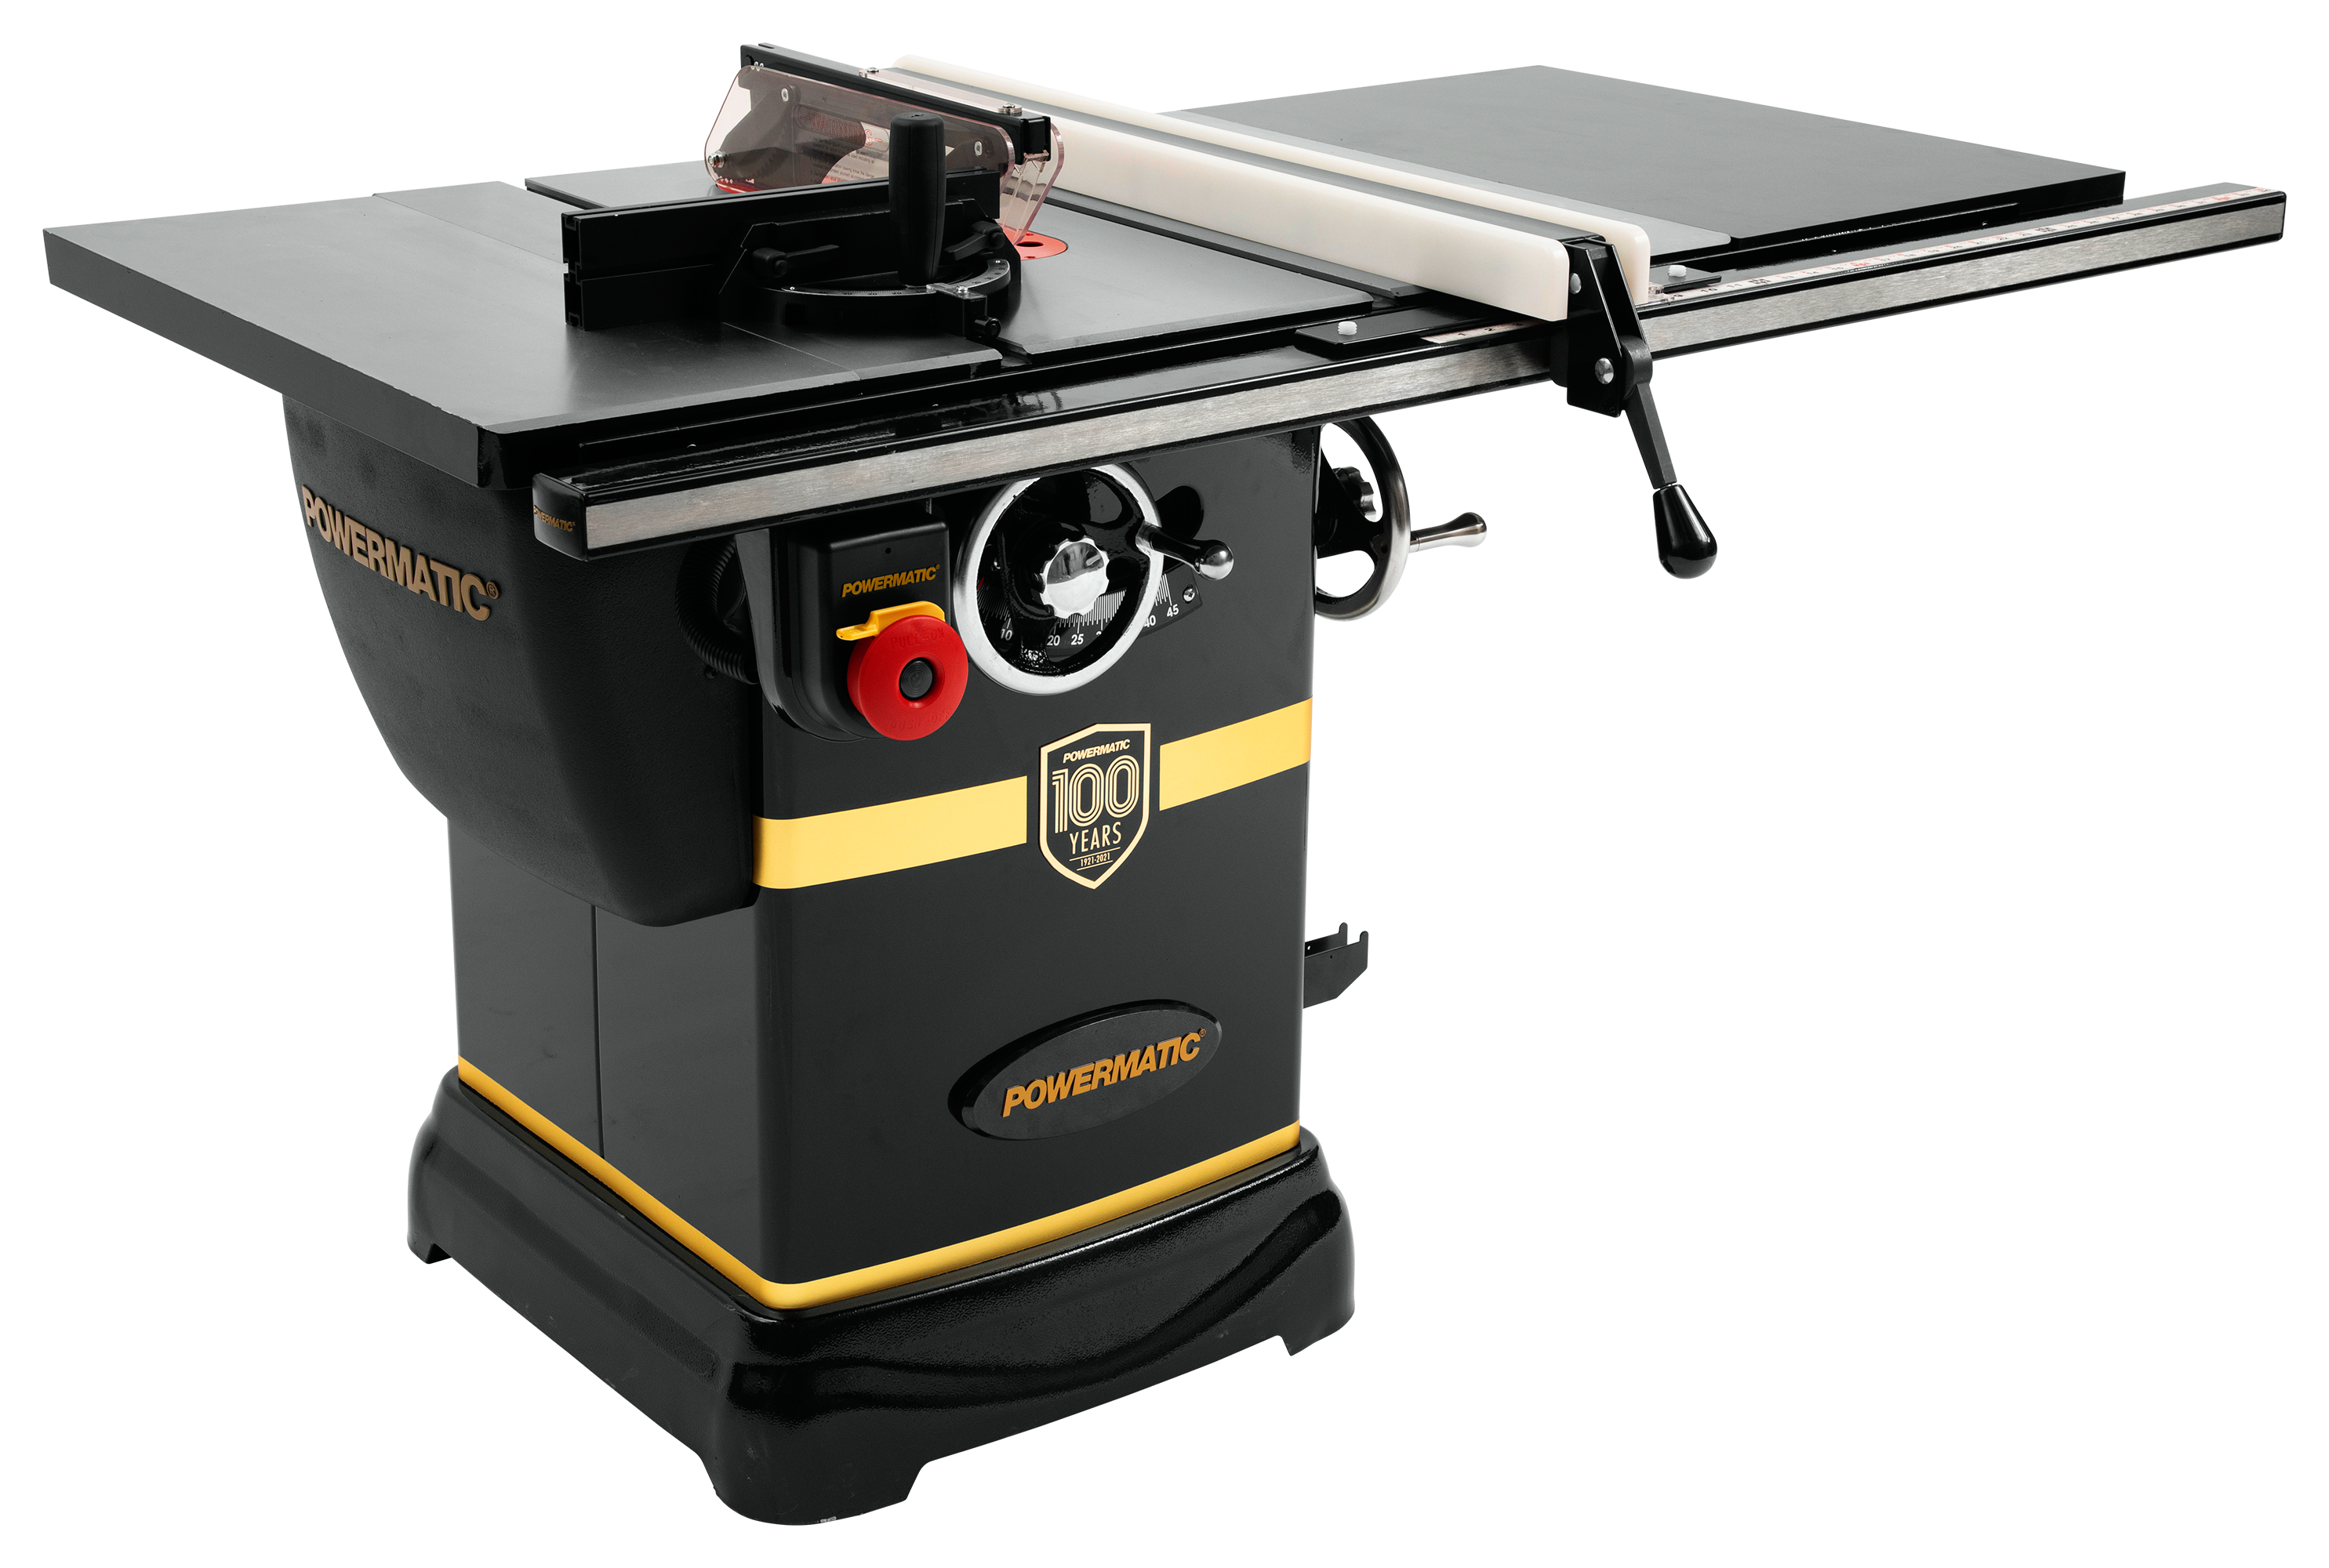 PM1000, Table Saw, 100 Year Limited Edition